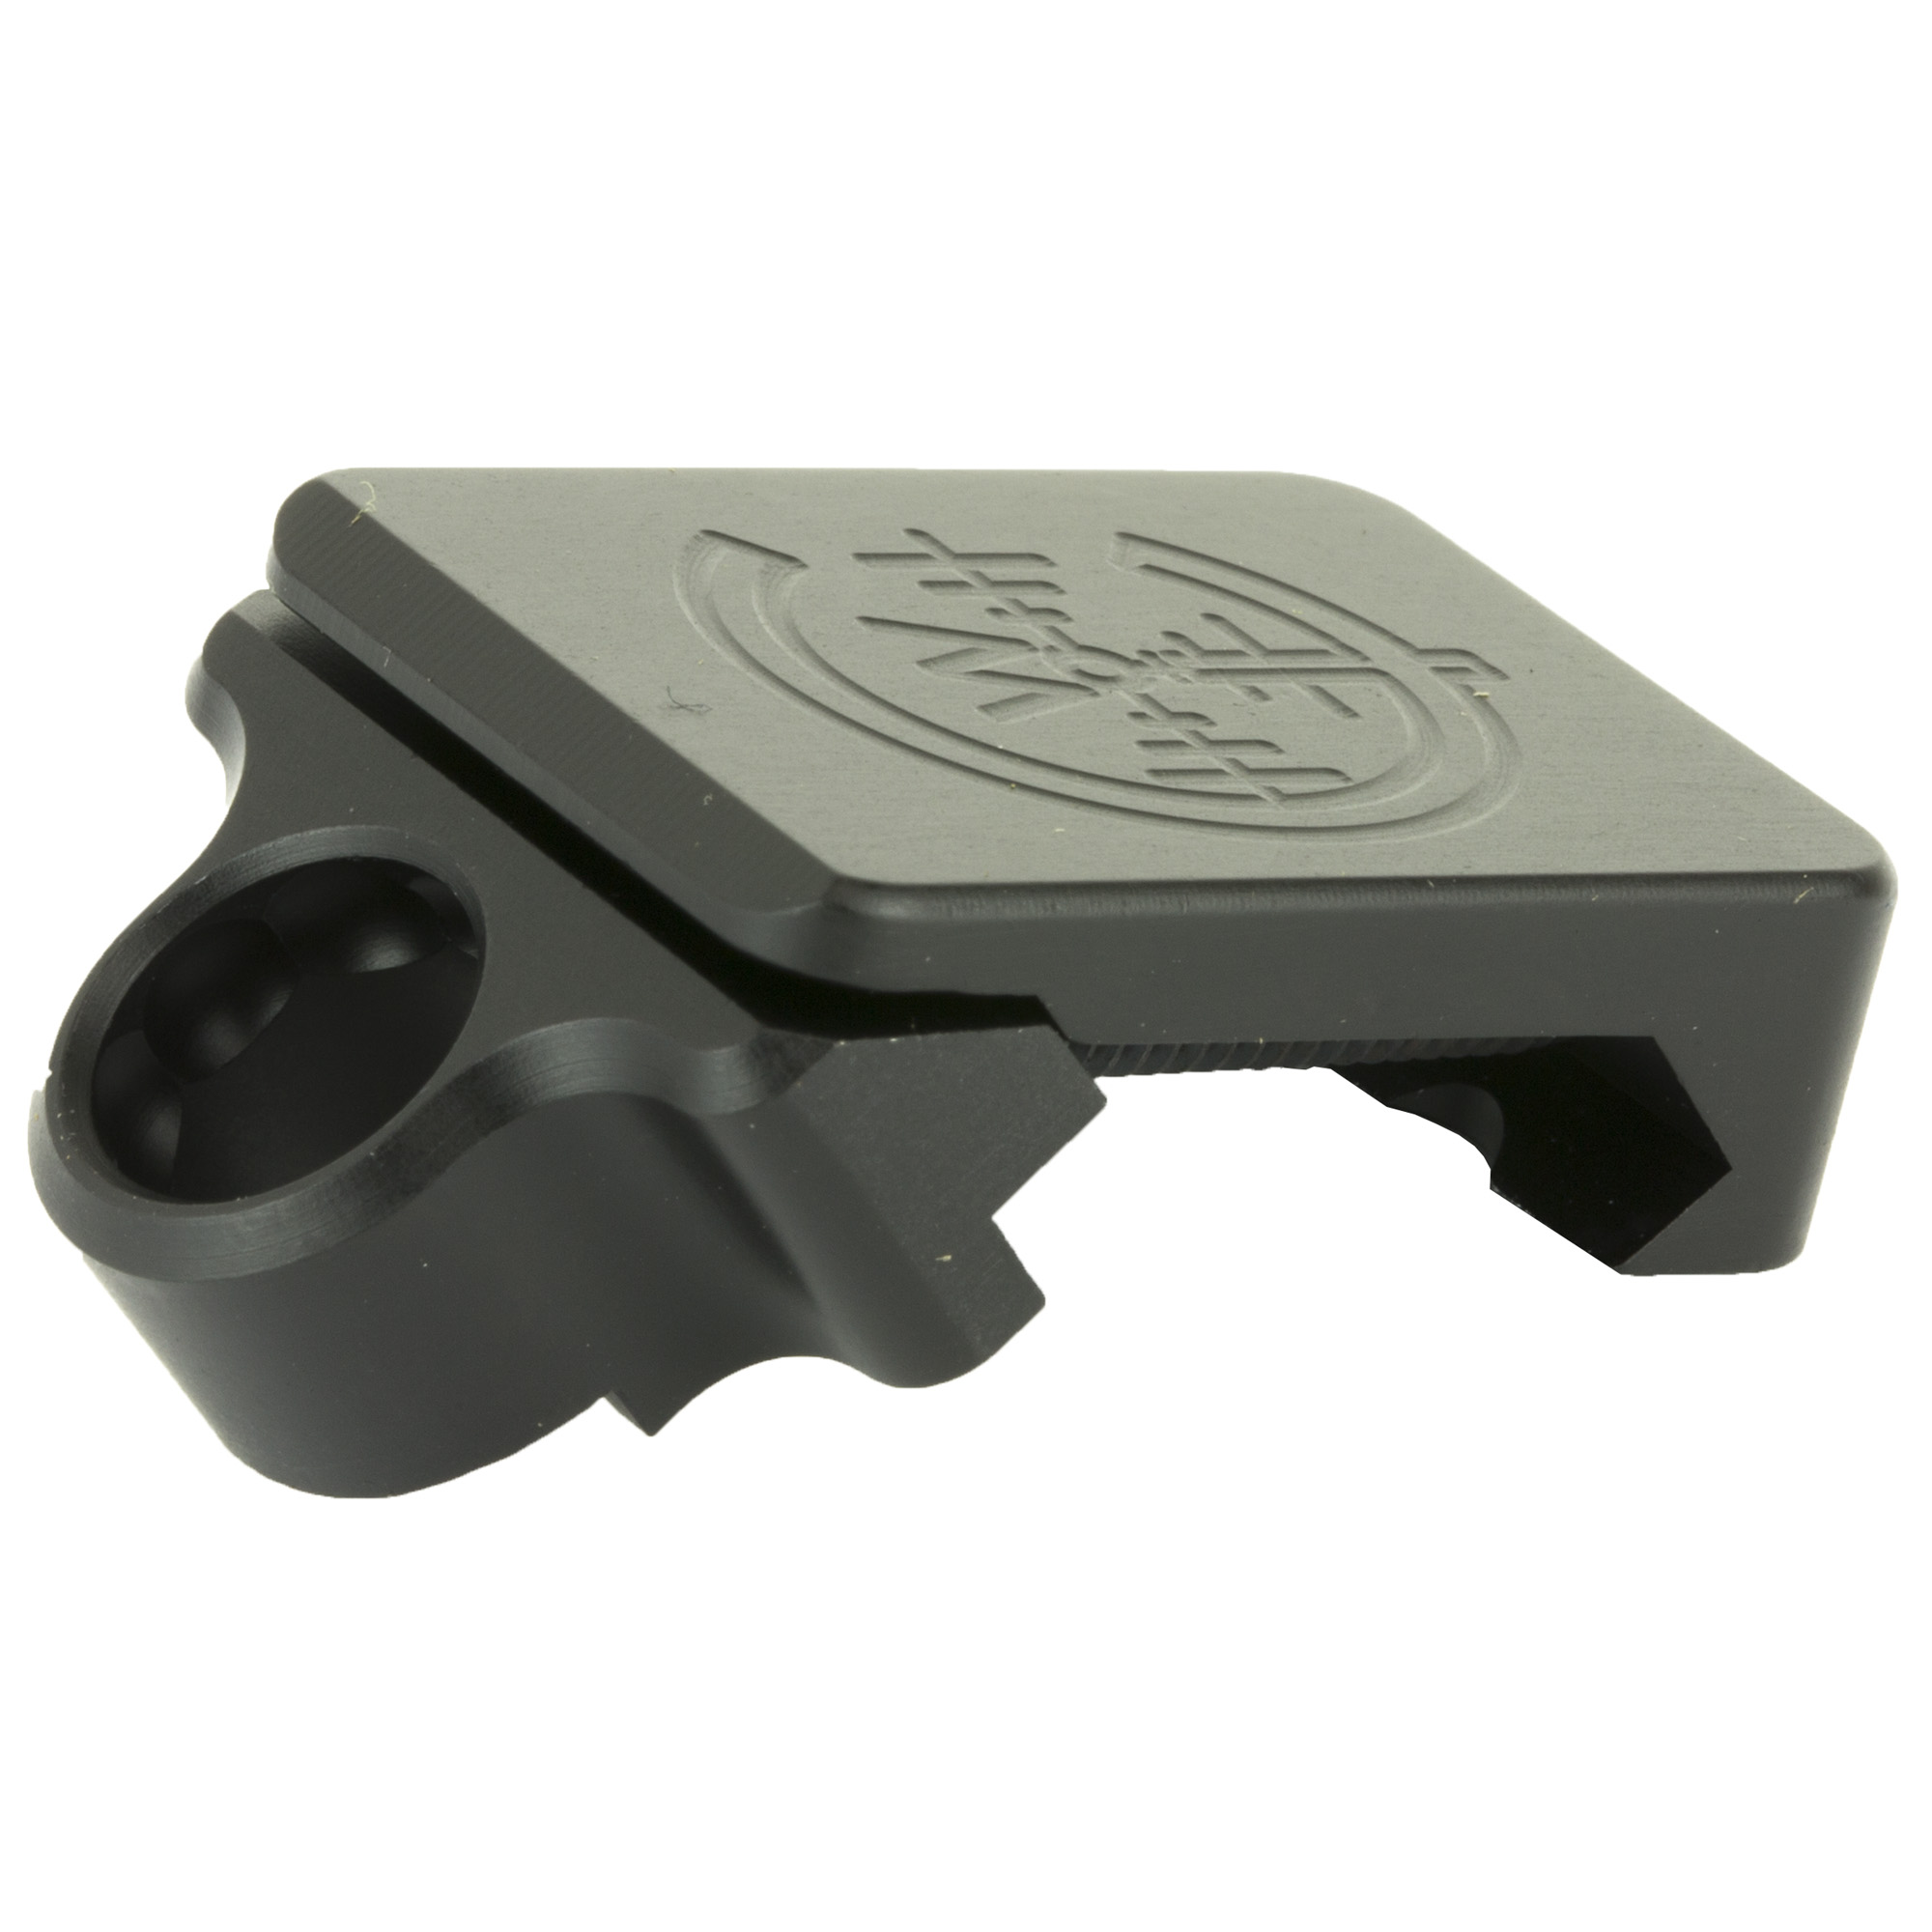 THE LOWEST PROFILE QD Rotation Limited Sling Mount. PERIOD! 45 Degree Offset design recesses the Quick Detach Socket as close to the centerline of the weapon as possible for maximum clearance. Directly attaches to all Picatinny MIL-Spec 1913 & STANG Rails. Compatible with all Push Button QD Sling Swivels.